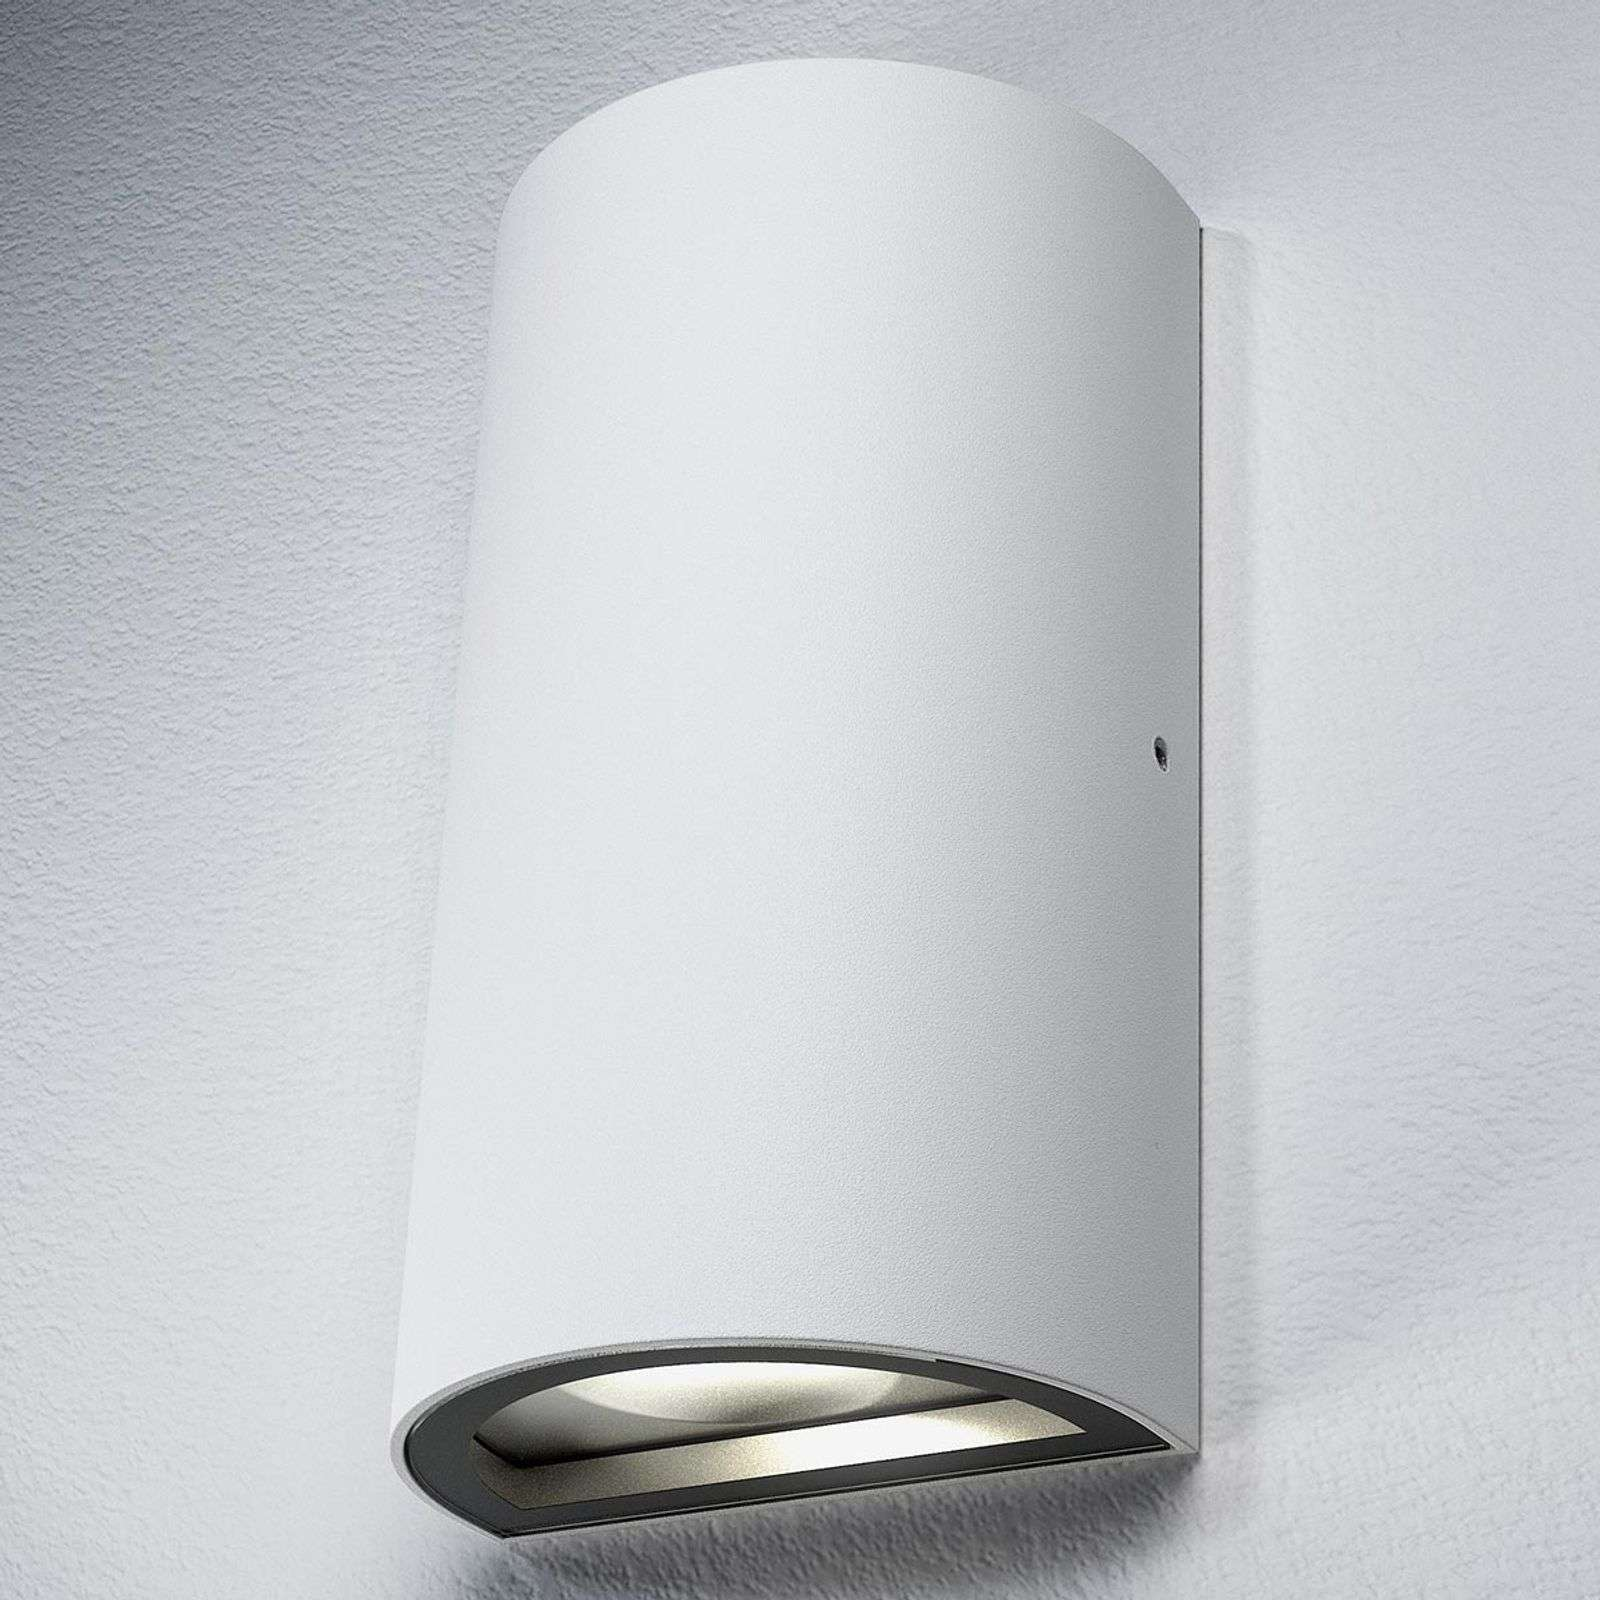 Applique murale LED Endura Style UpDown, blanc